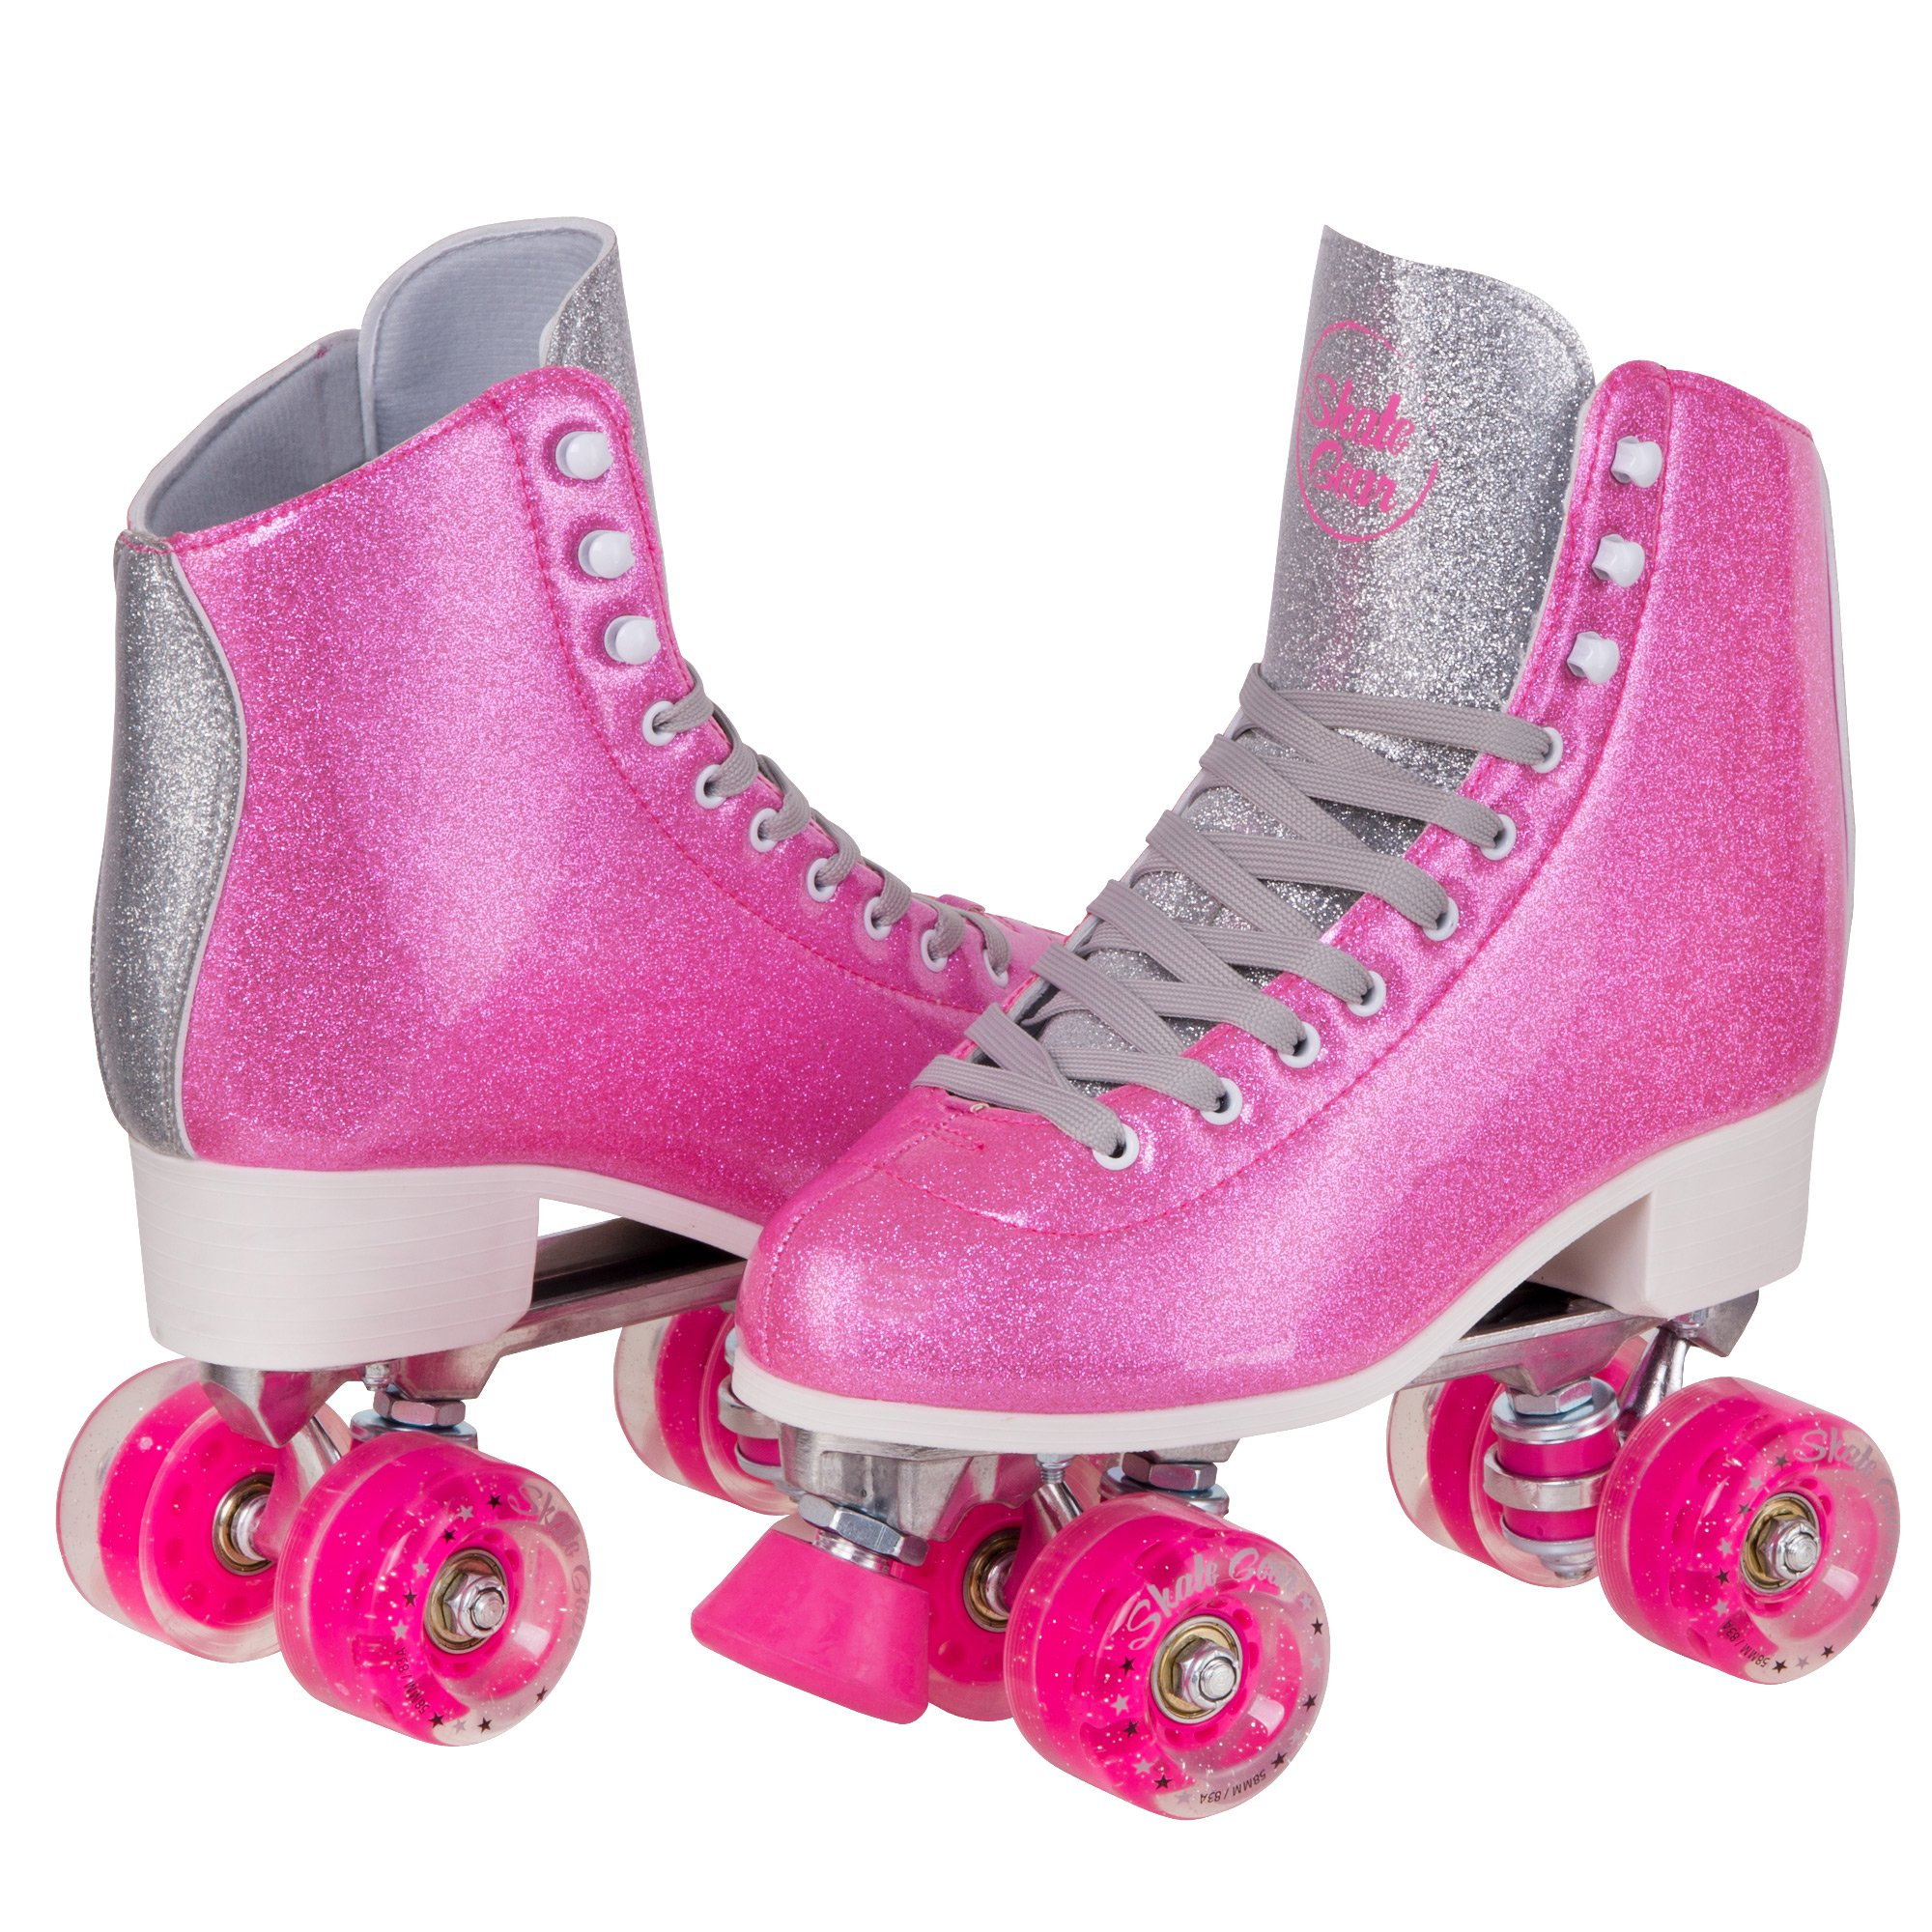 Cal 7 Sparkly Roller Skates for Indoor & Outdoor Skating, Faux Leather Quad Skate with Ankle Support & 83A PU Wheels for Kids & Adults (Pink, Youth 4 / Women's 5)